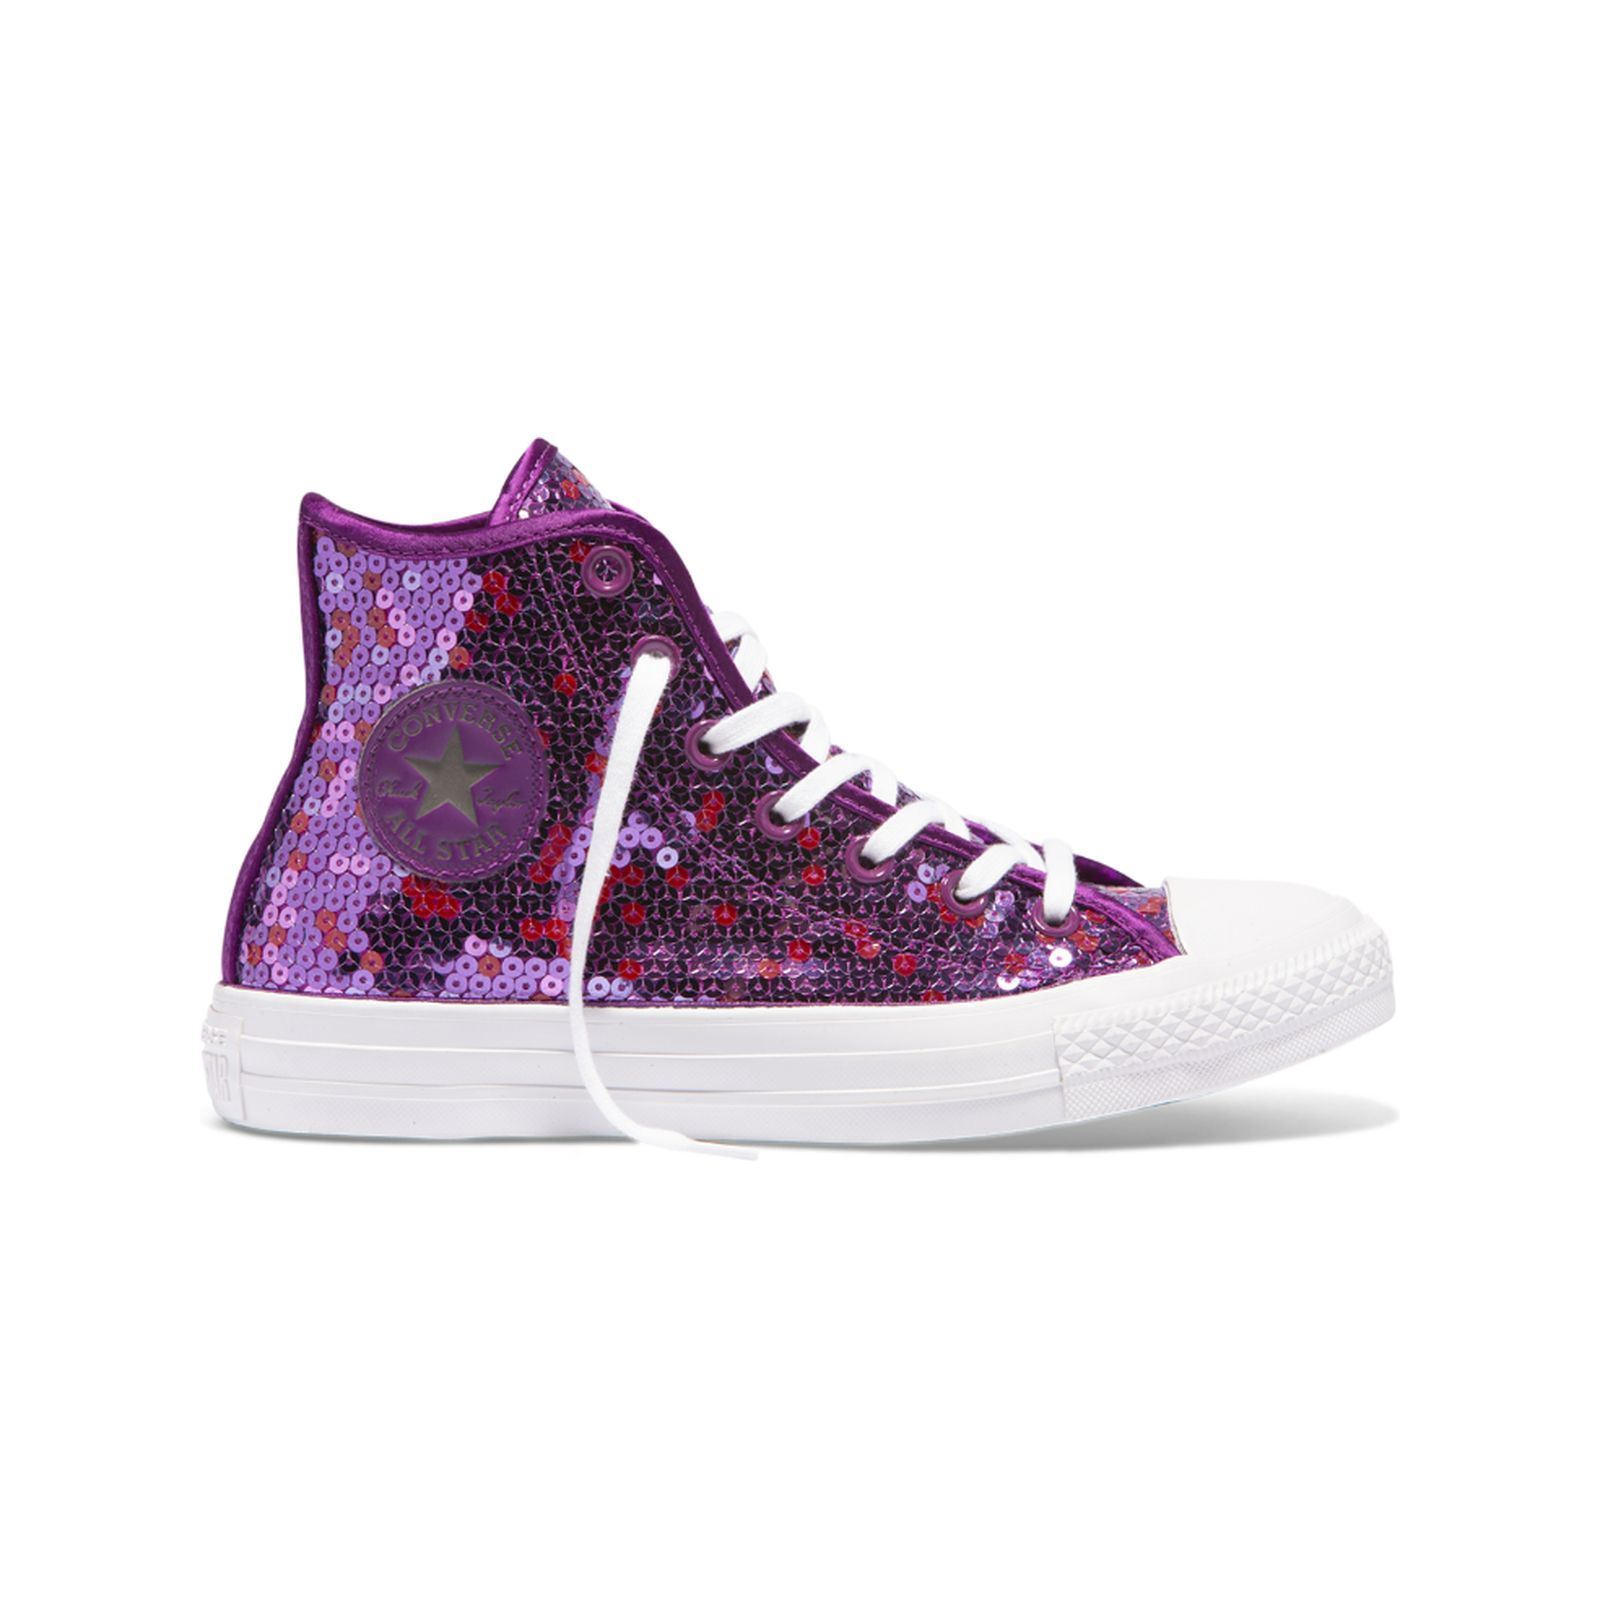 a48817873e48d Converse Chuck Taylor all star - Baskets montantes - mauve   BrandAlley